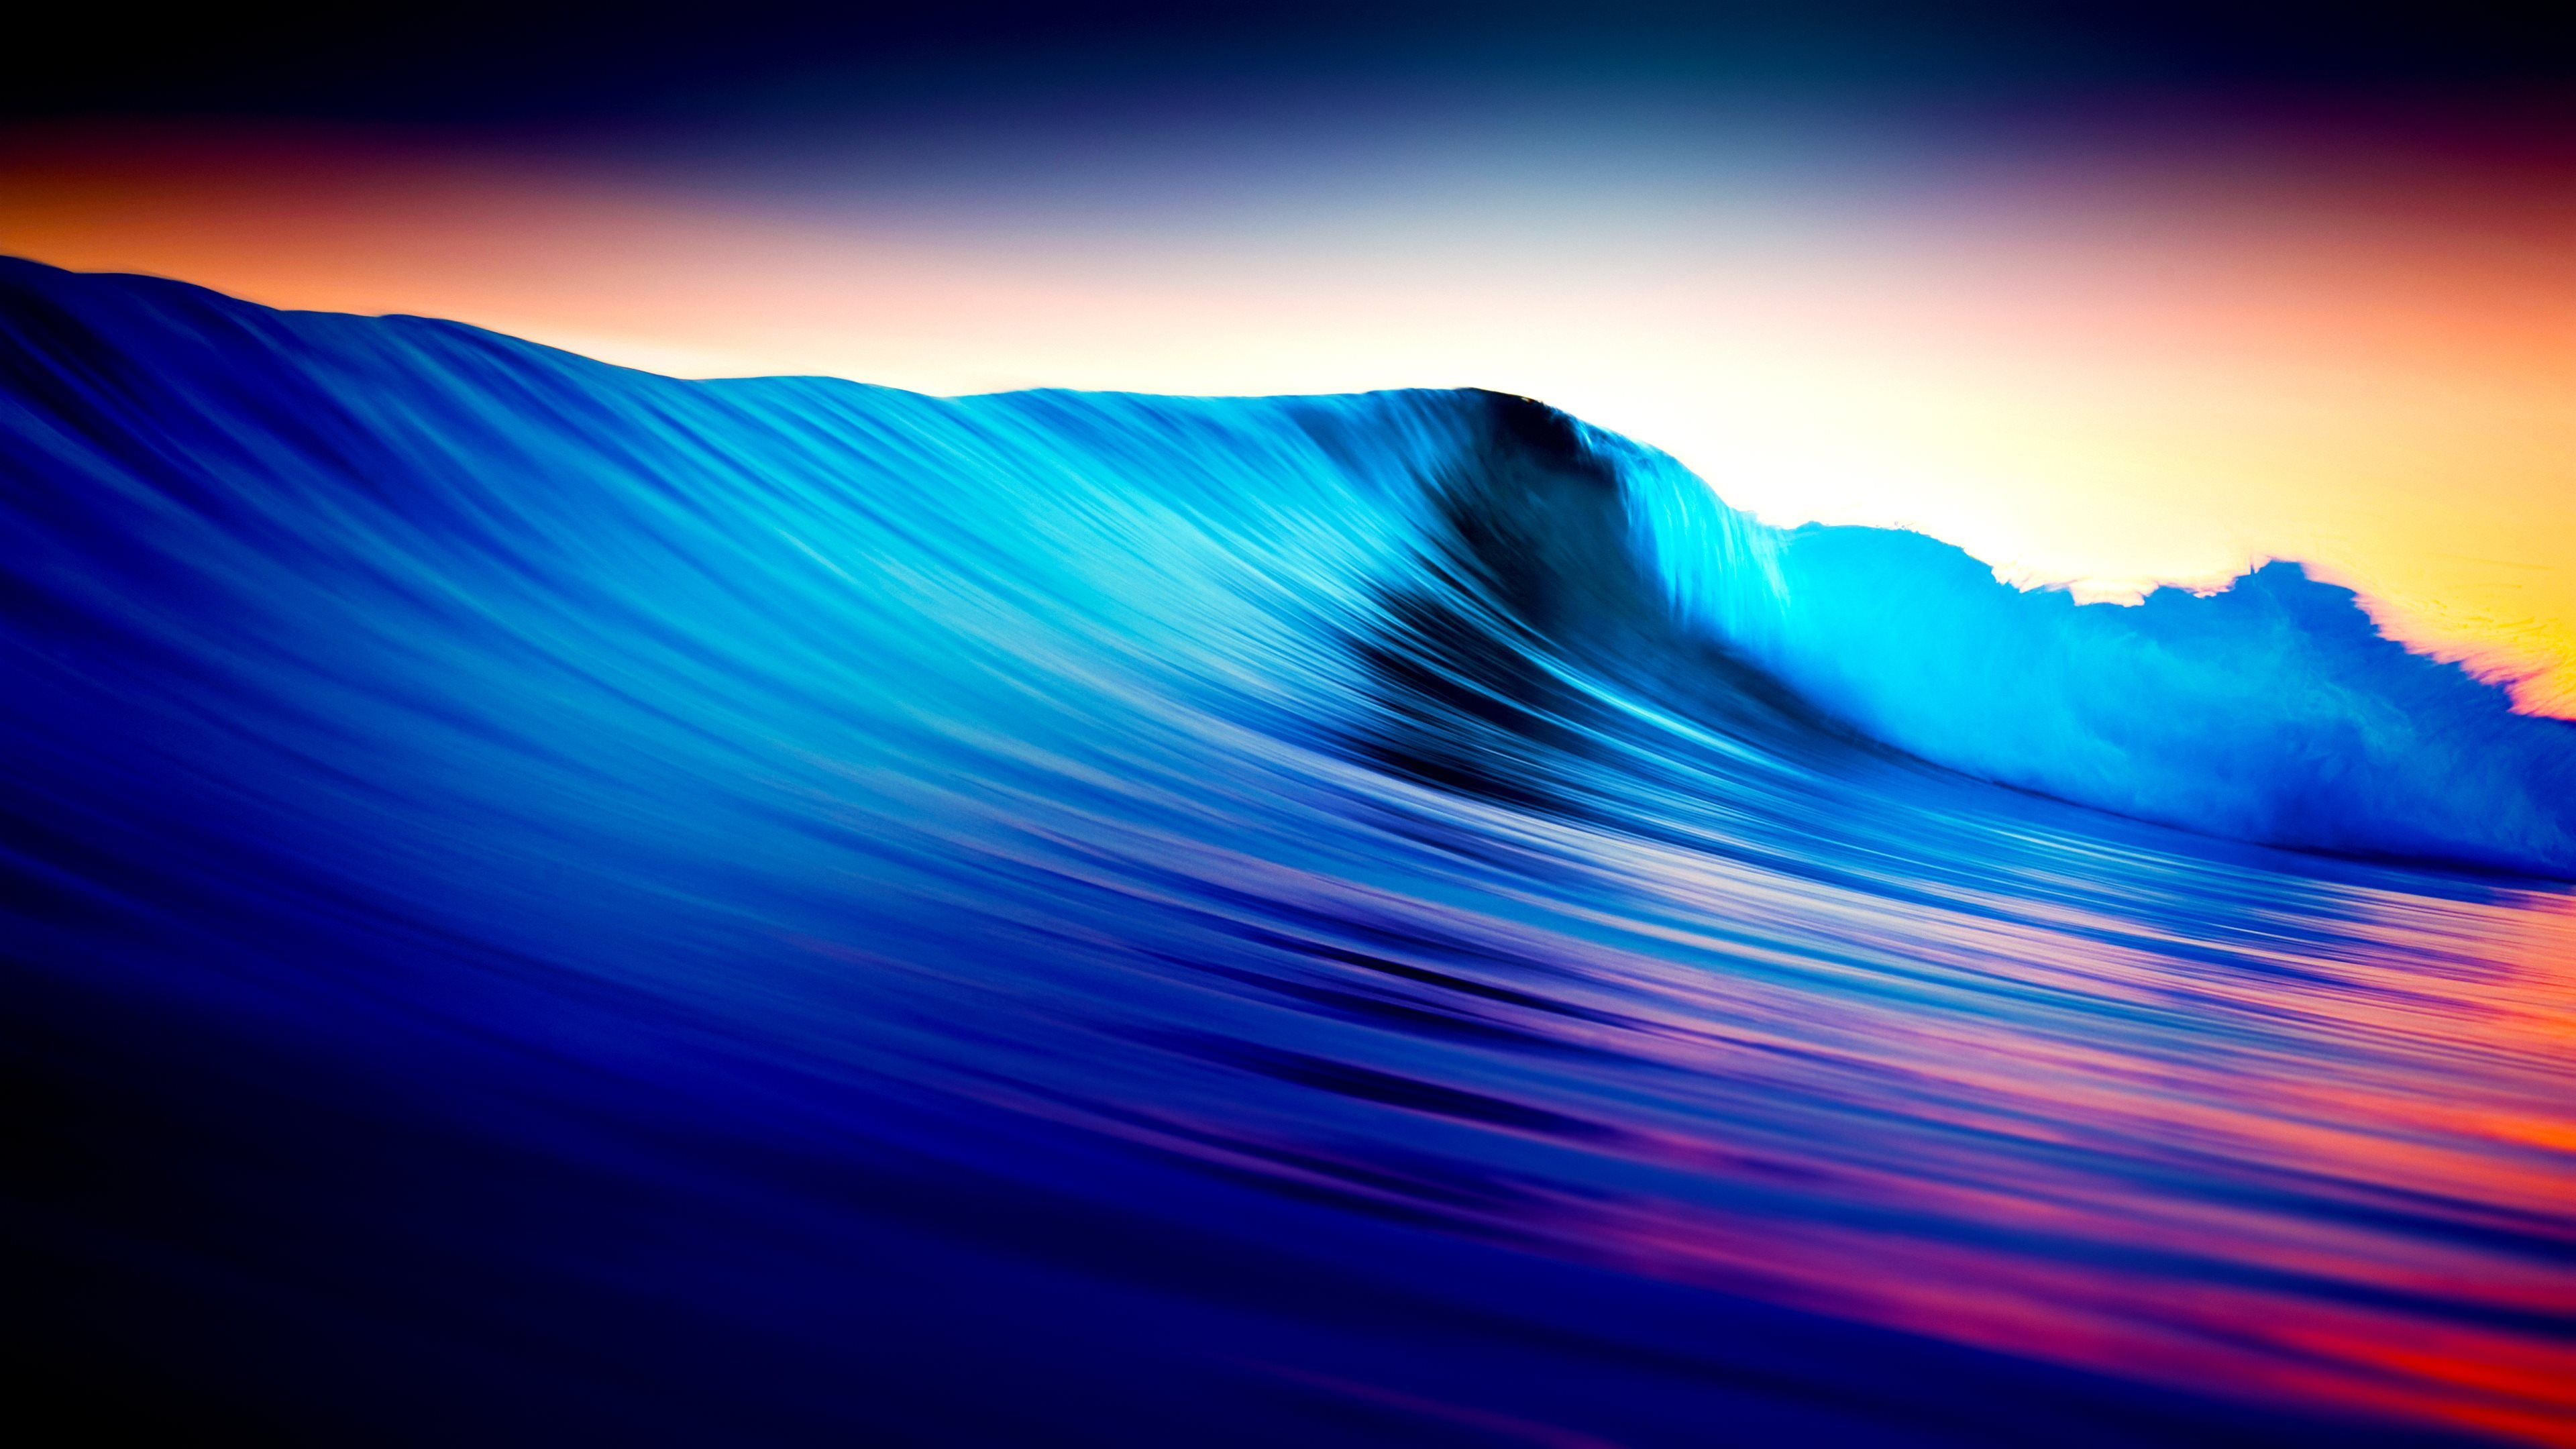 Ultra HD Wallpapers 4K Group  89   Rolling Waves Mod ultra HD jpg